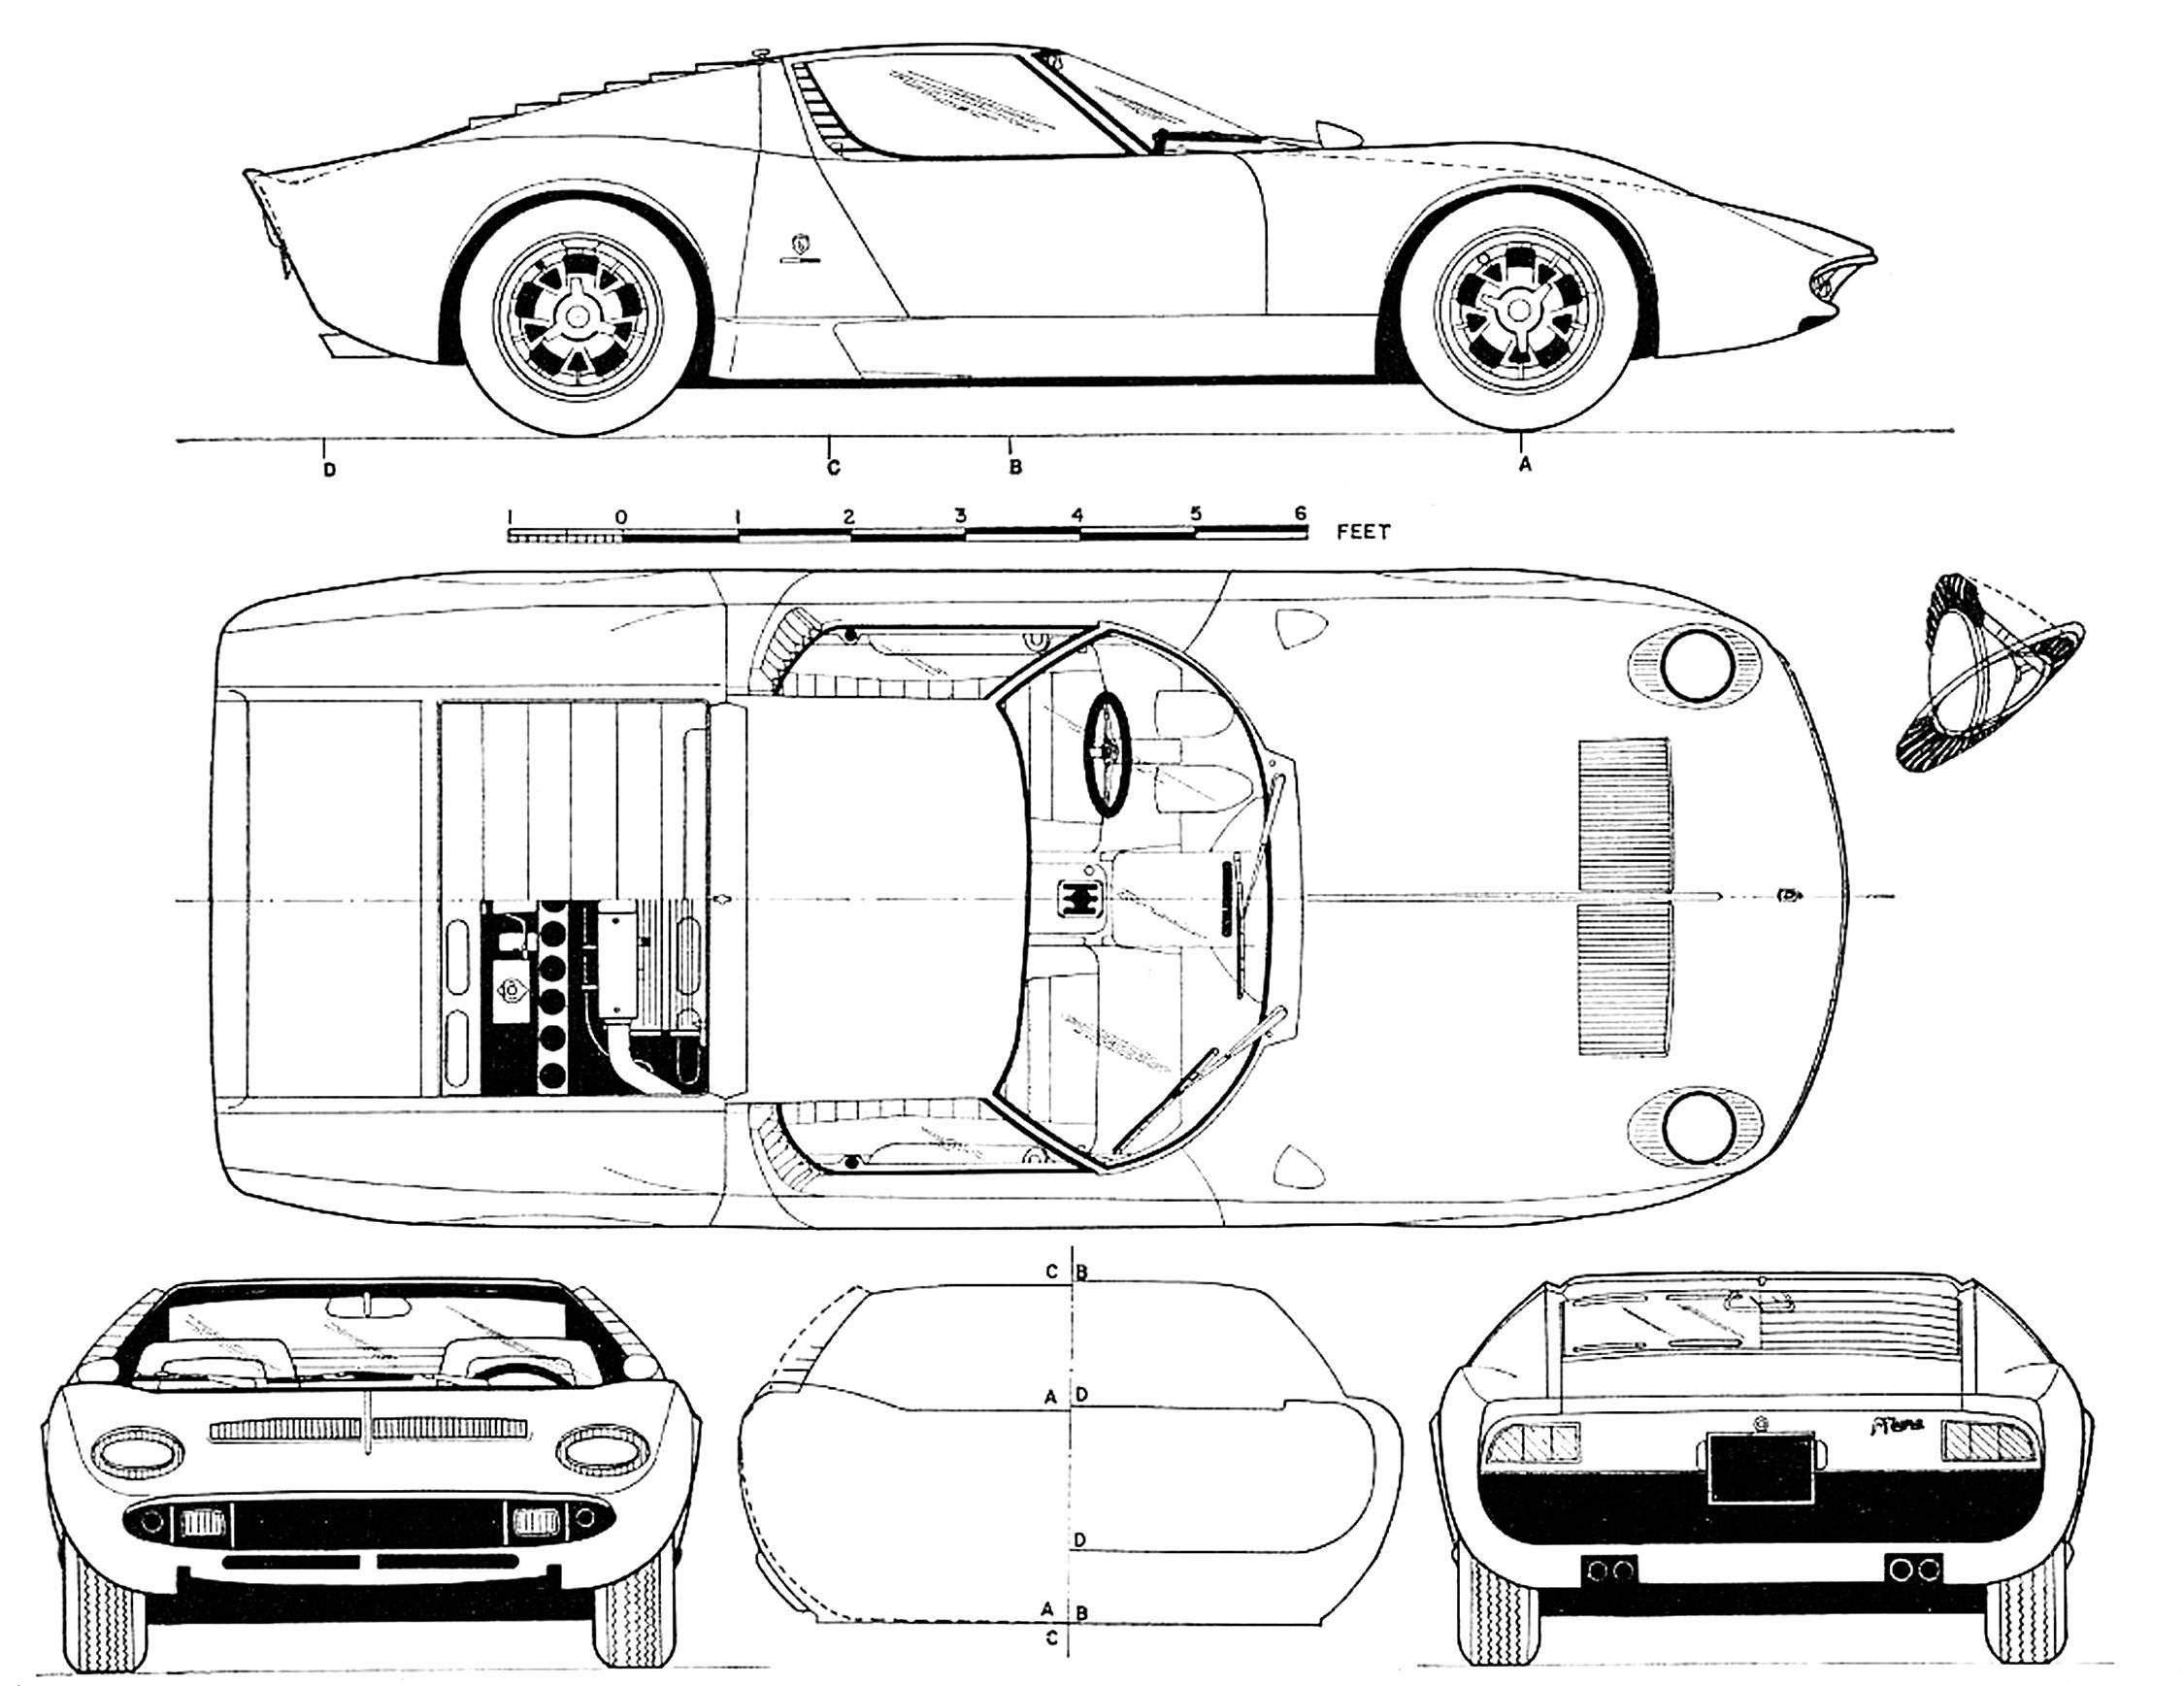 Lamborghini Miura Blueprint - Download free blueprint for 3D modeling